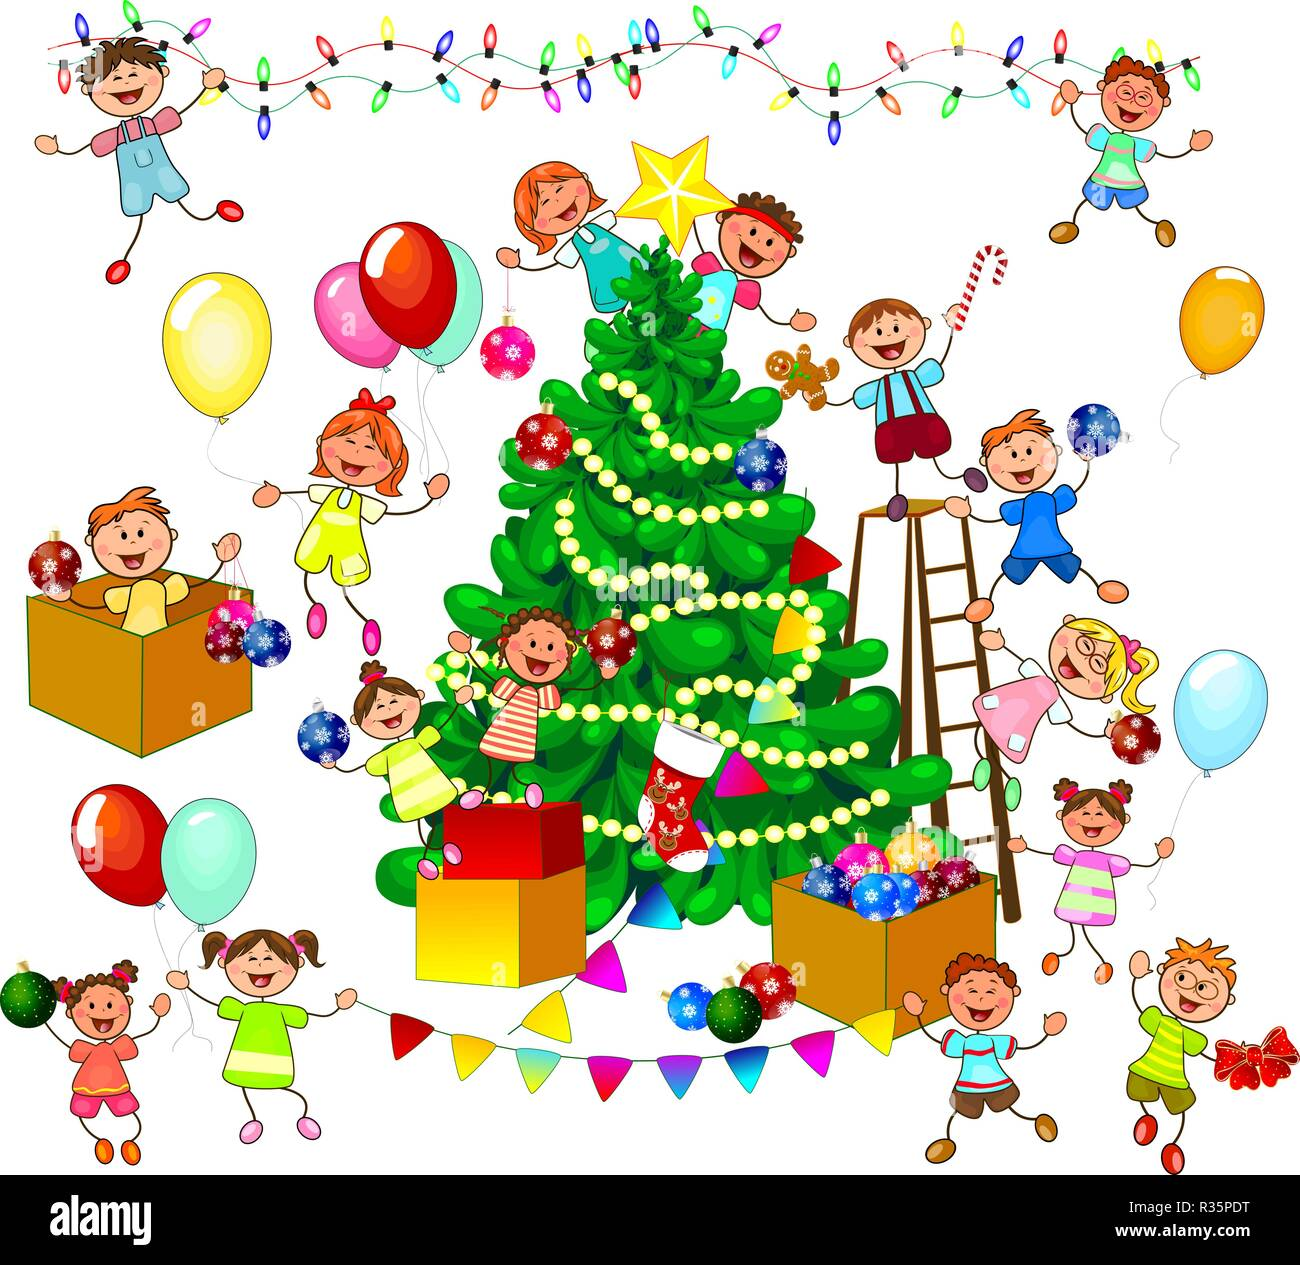 Joyful little children decorate the Christmas tree. A group of cheerful, smiling children on a white background. - Stock Vector